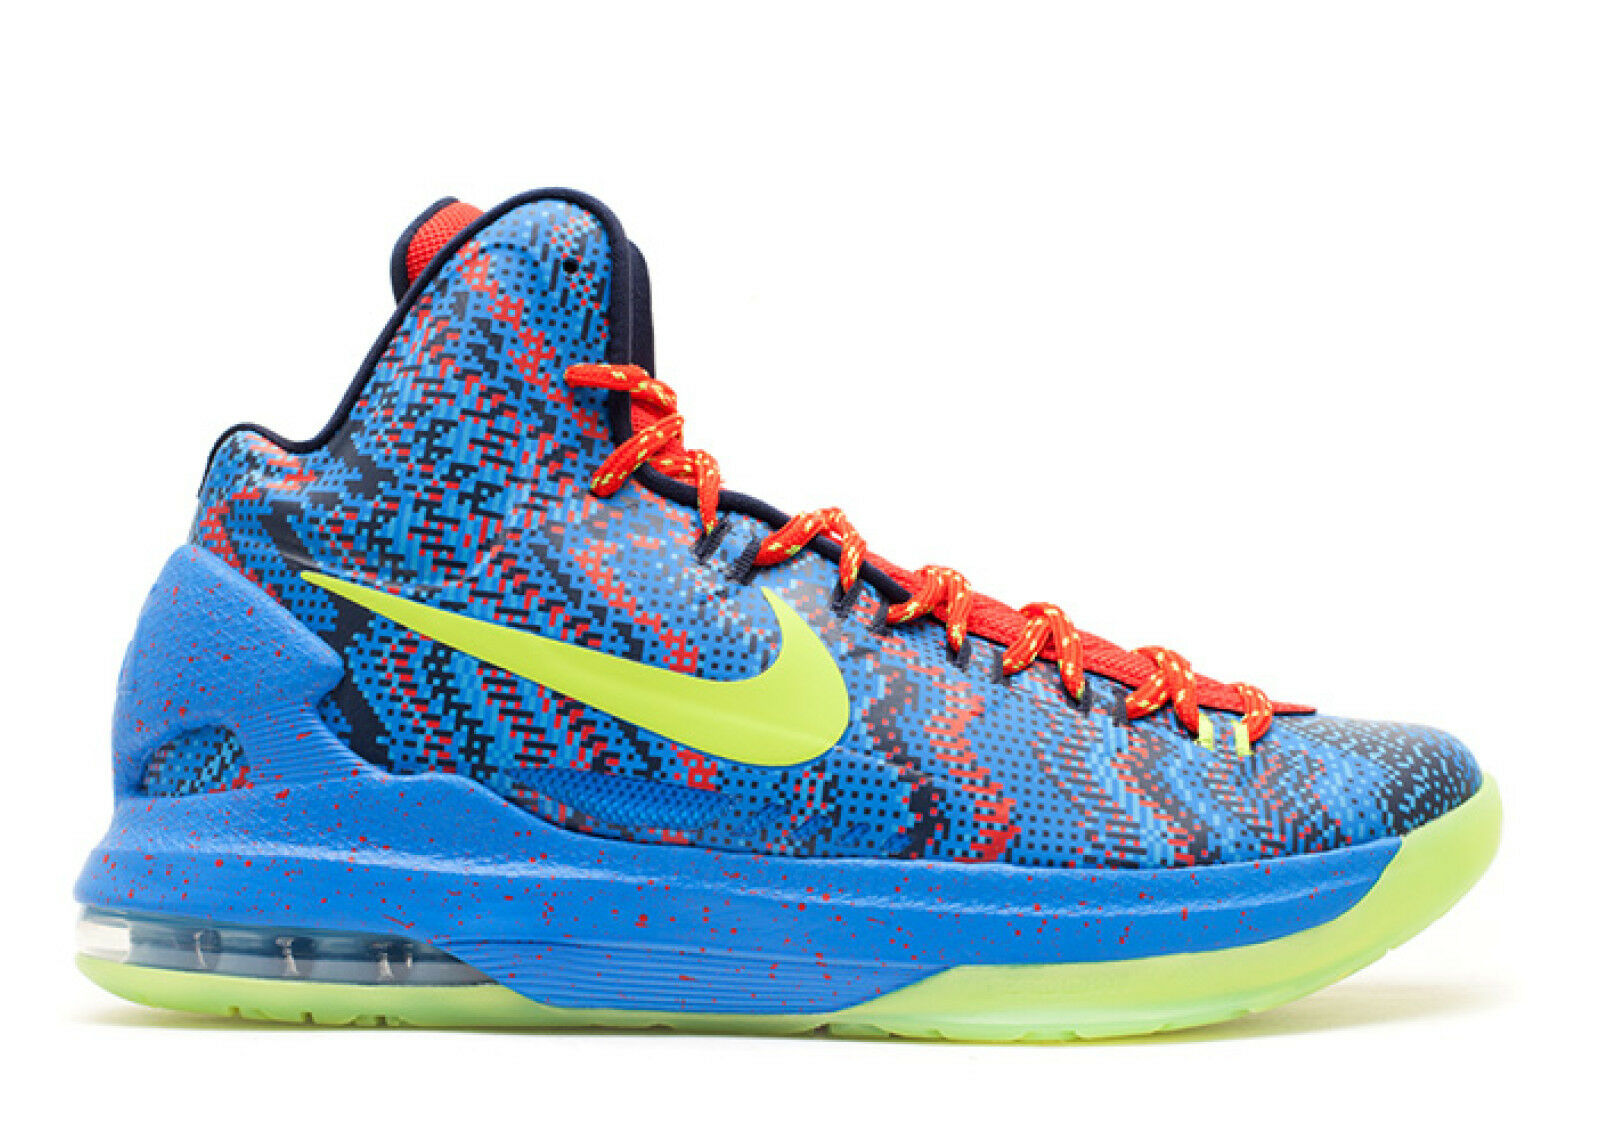 Nike Zoom KD V 5 Christmas SZ 14 554988-401KEVIN DURANT GSW Golden State